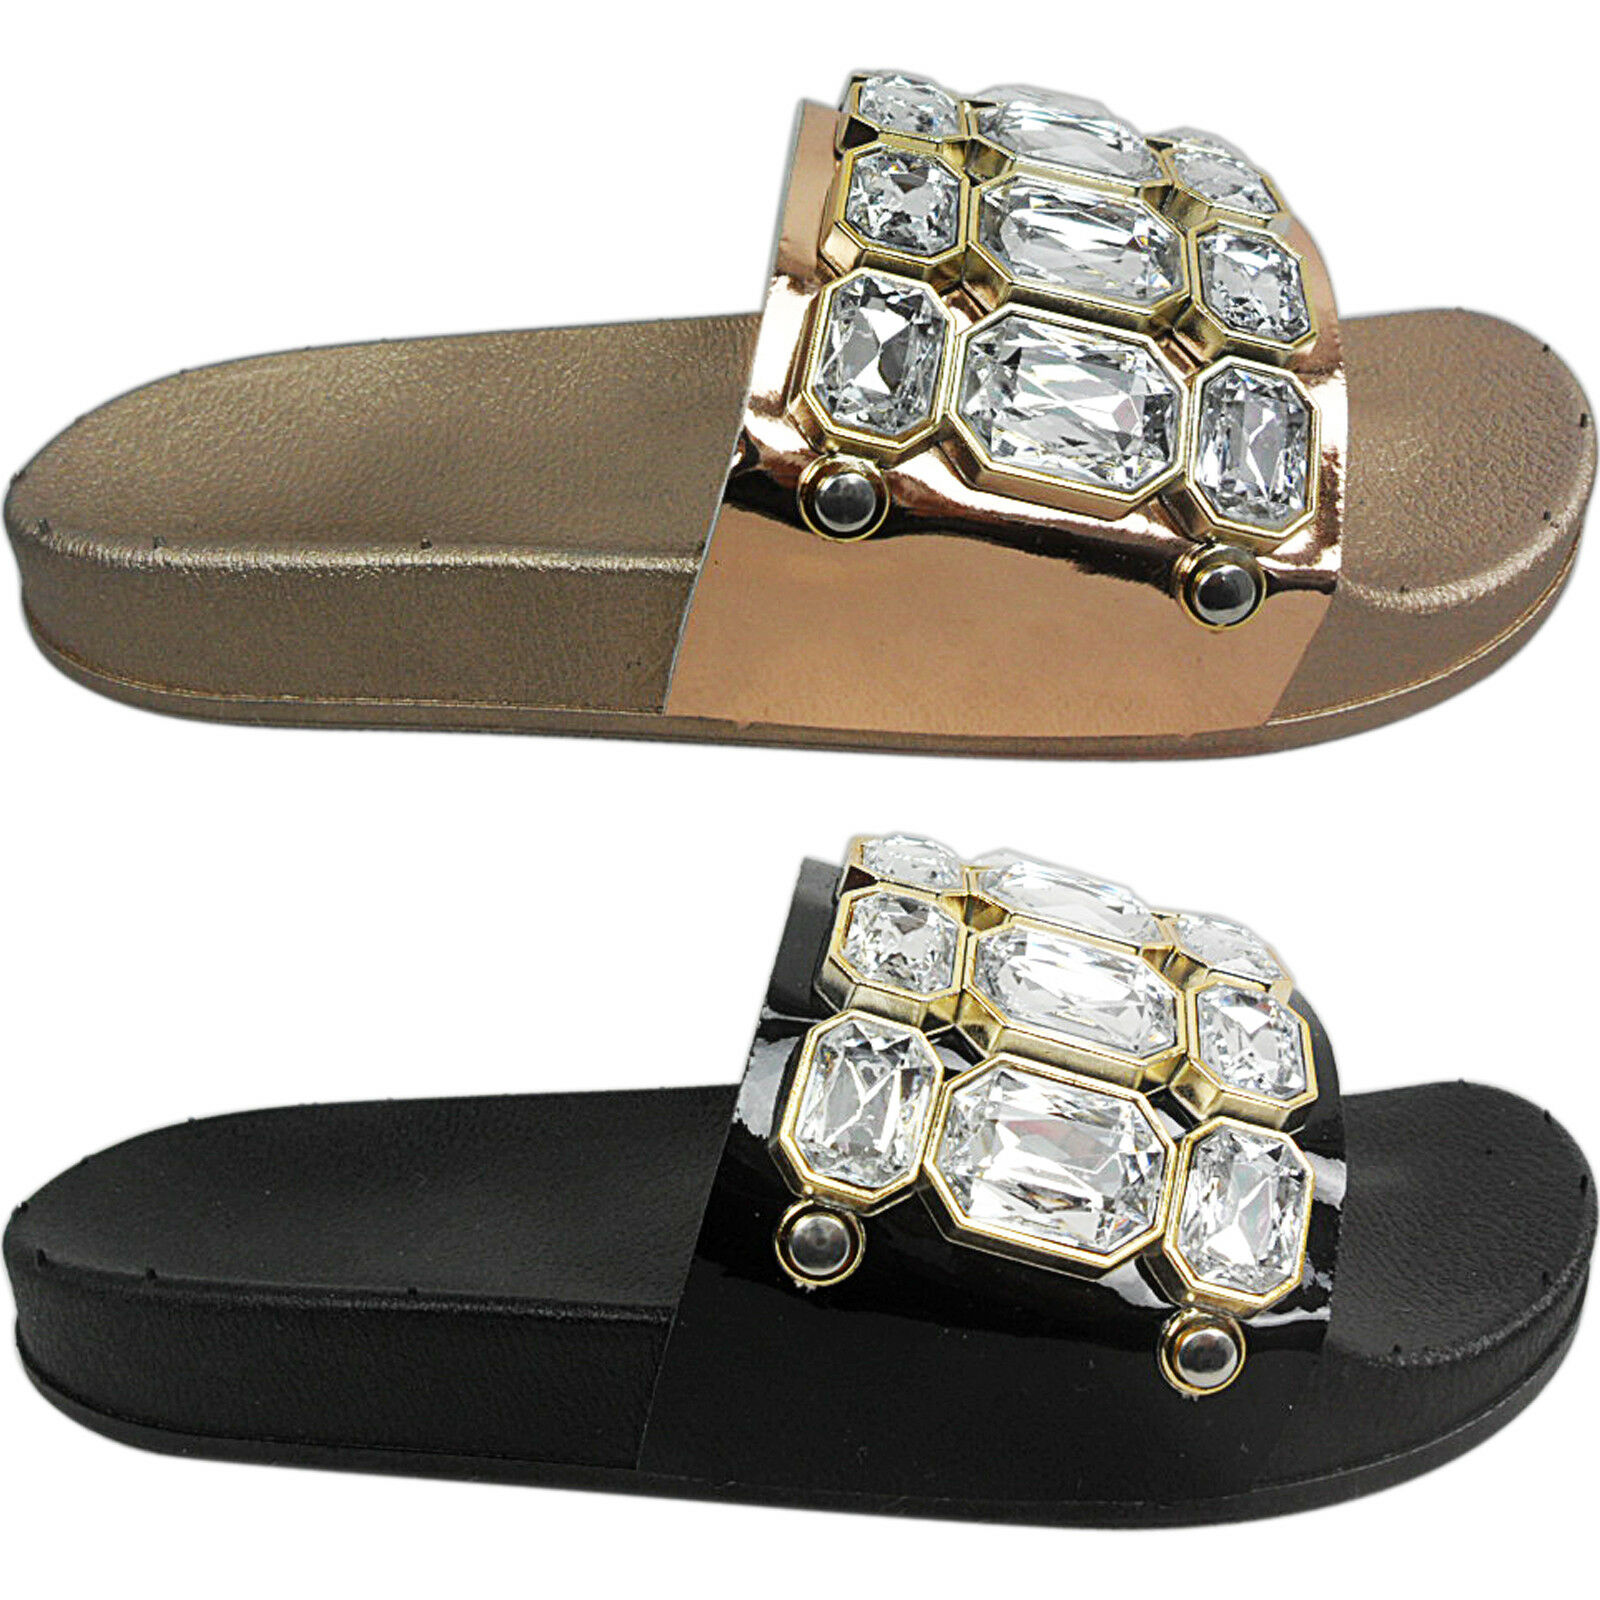 Gentleman/Lady NEW WOMENS LADIES RUBBER ONS DIAMANTE SLIDERS FLATS SLIP ONS RUBBER FLIP FLOP SANDALS SIZE Economical and practical low cost Outstanding function GN1549 dc7927